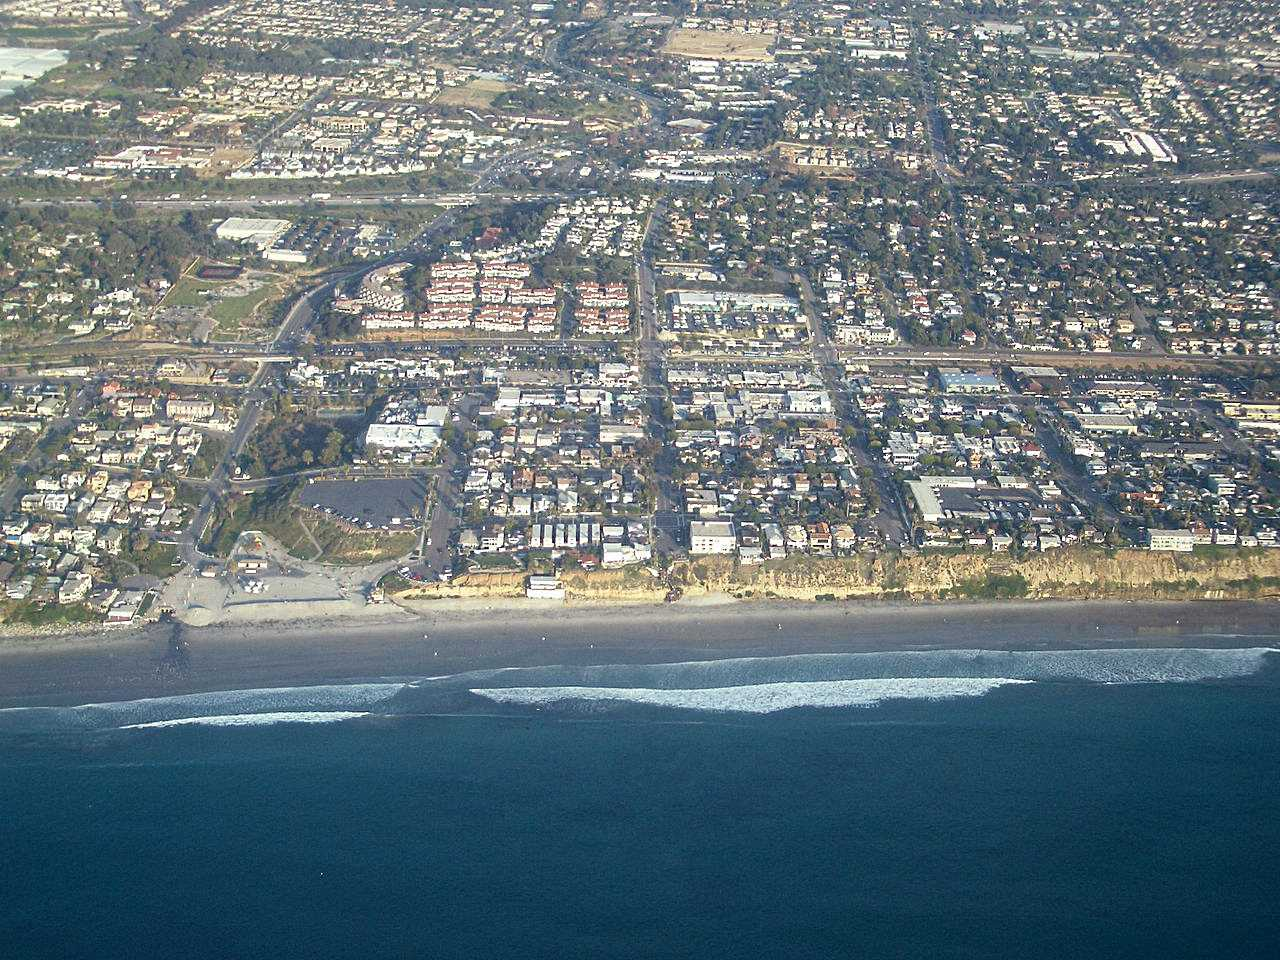 Encinitas California showing Moonlight Beach